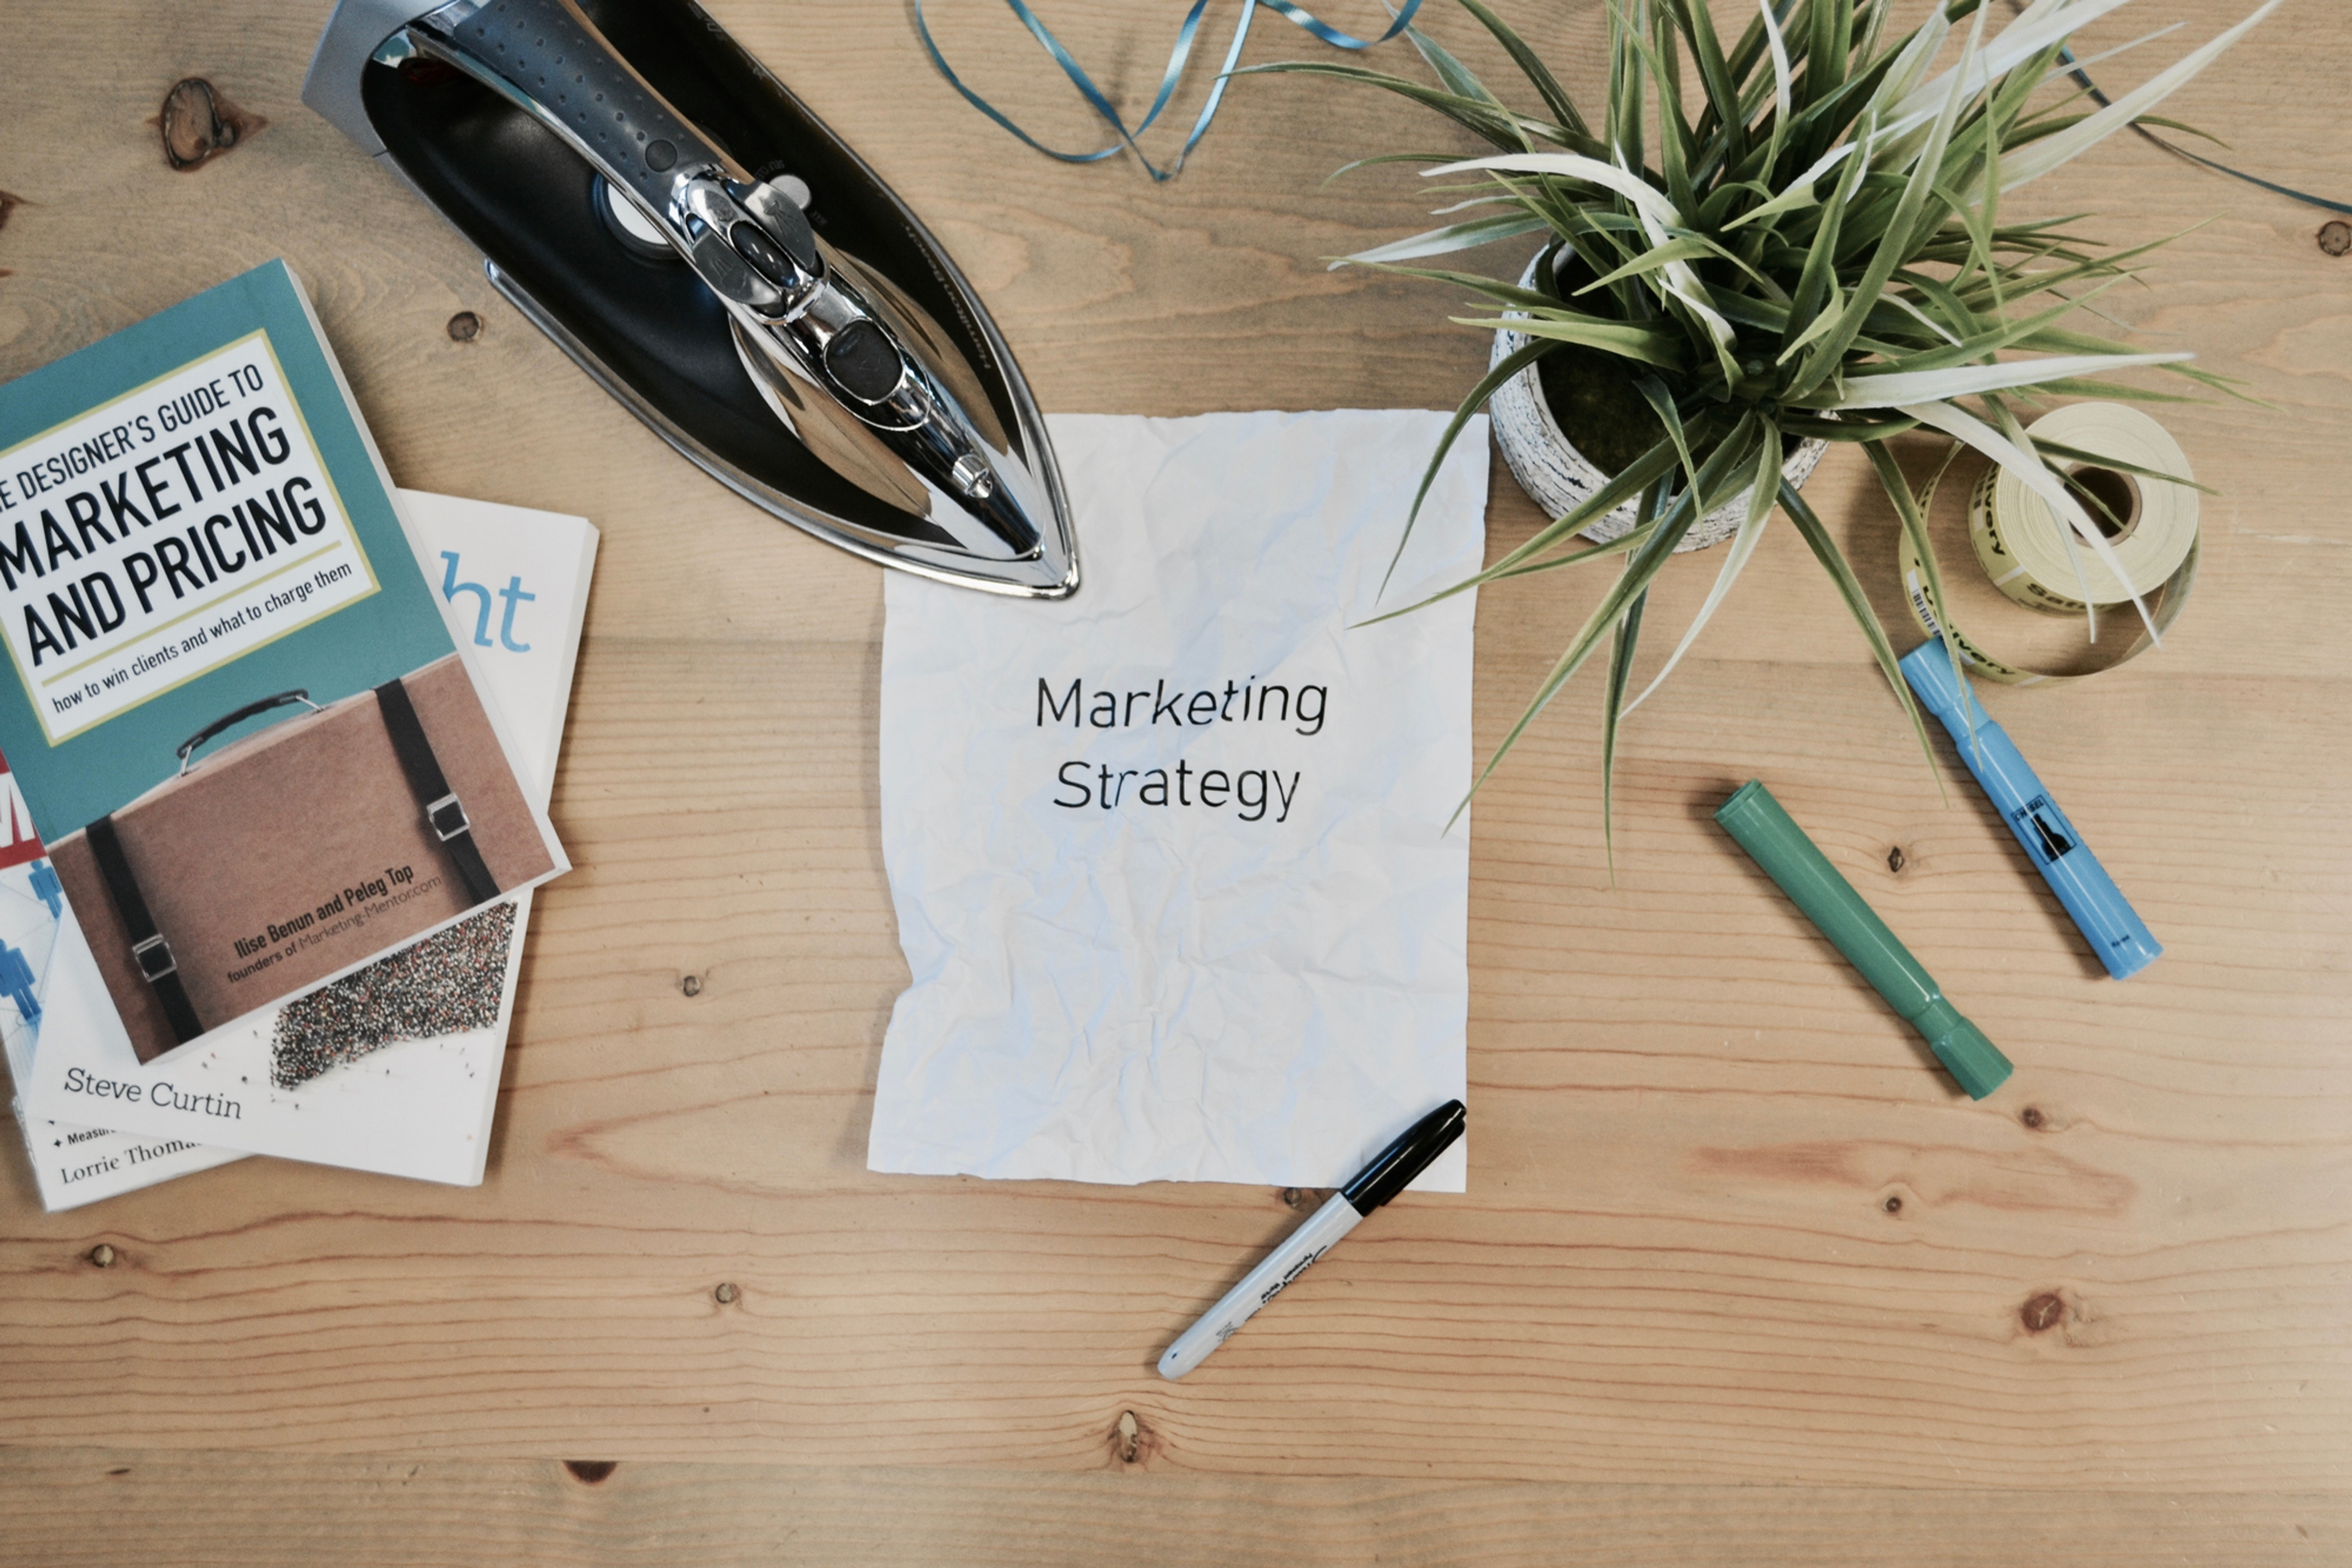 Marketing Techniques and Strategy